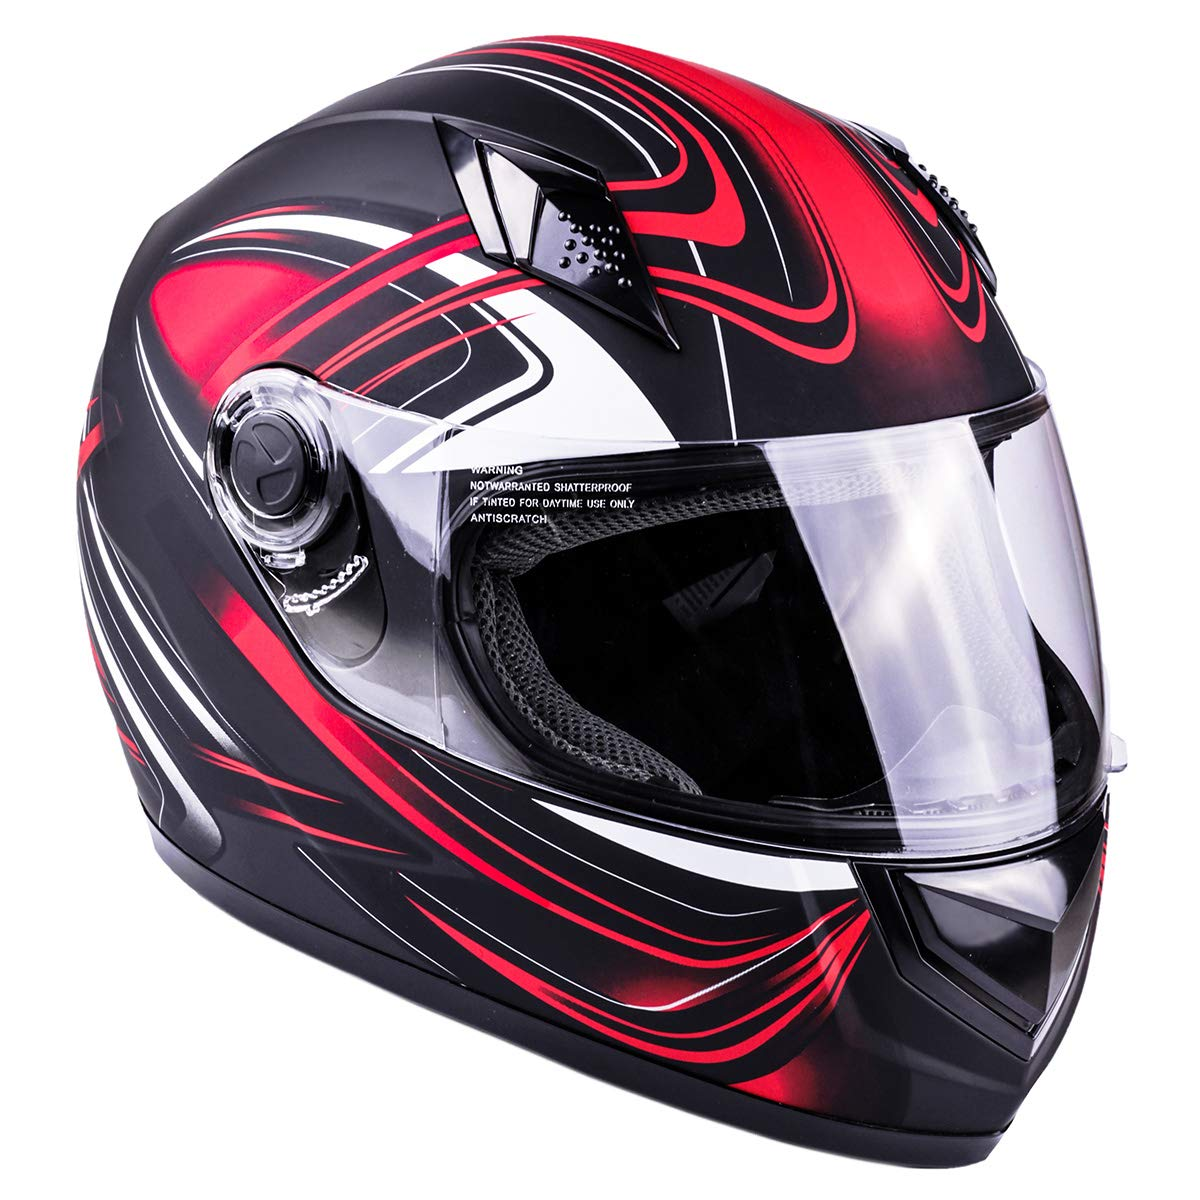 Typhoon Adult Full Face Motorcycle Helmet DOT - SAME DAY SHIPPING (Matte Red, XXXXL)